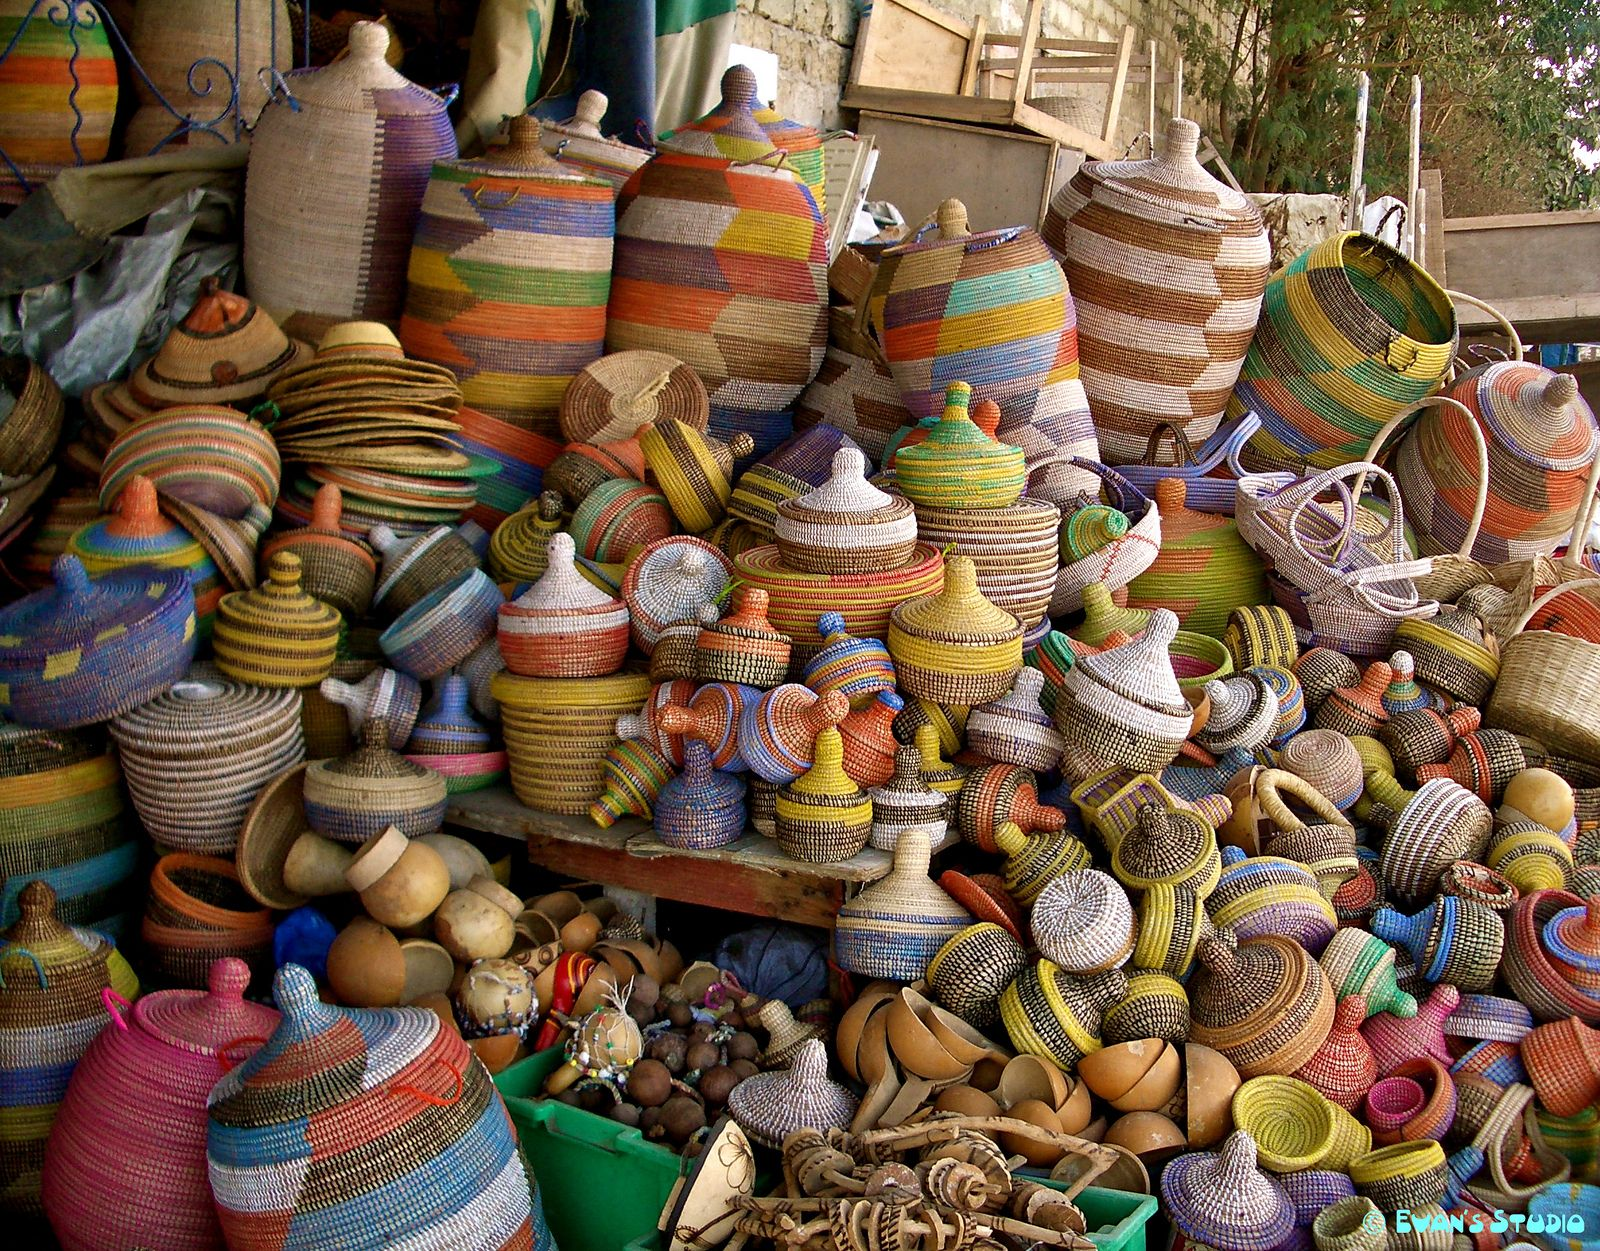 Baskets in a marketplace in Dakar, Senegal